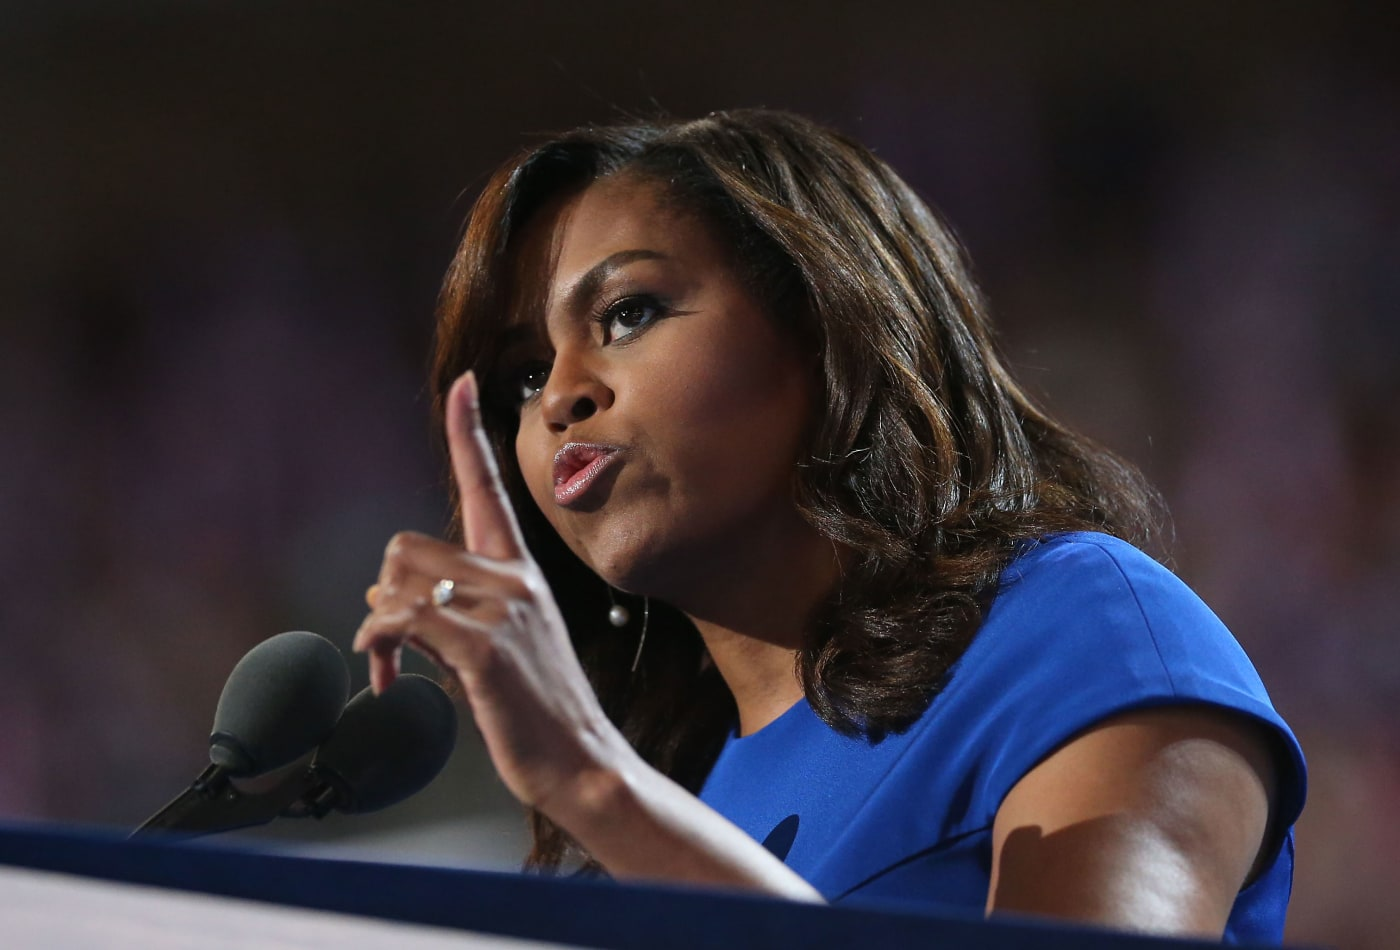 Michelle Obama Rips Trump As 'Clearly In Over His Head'